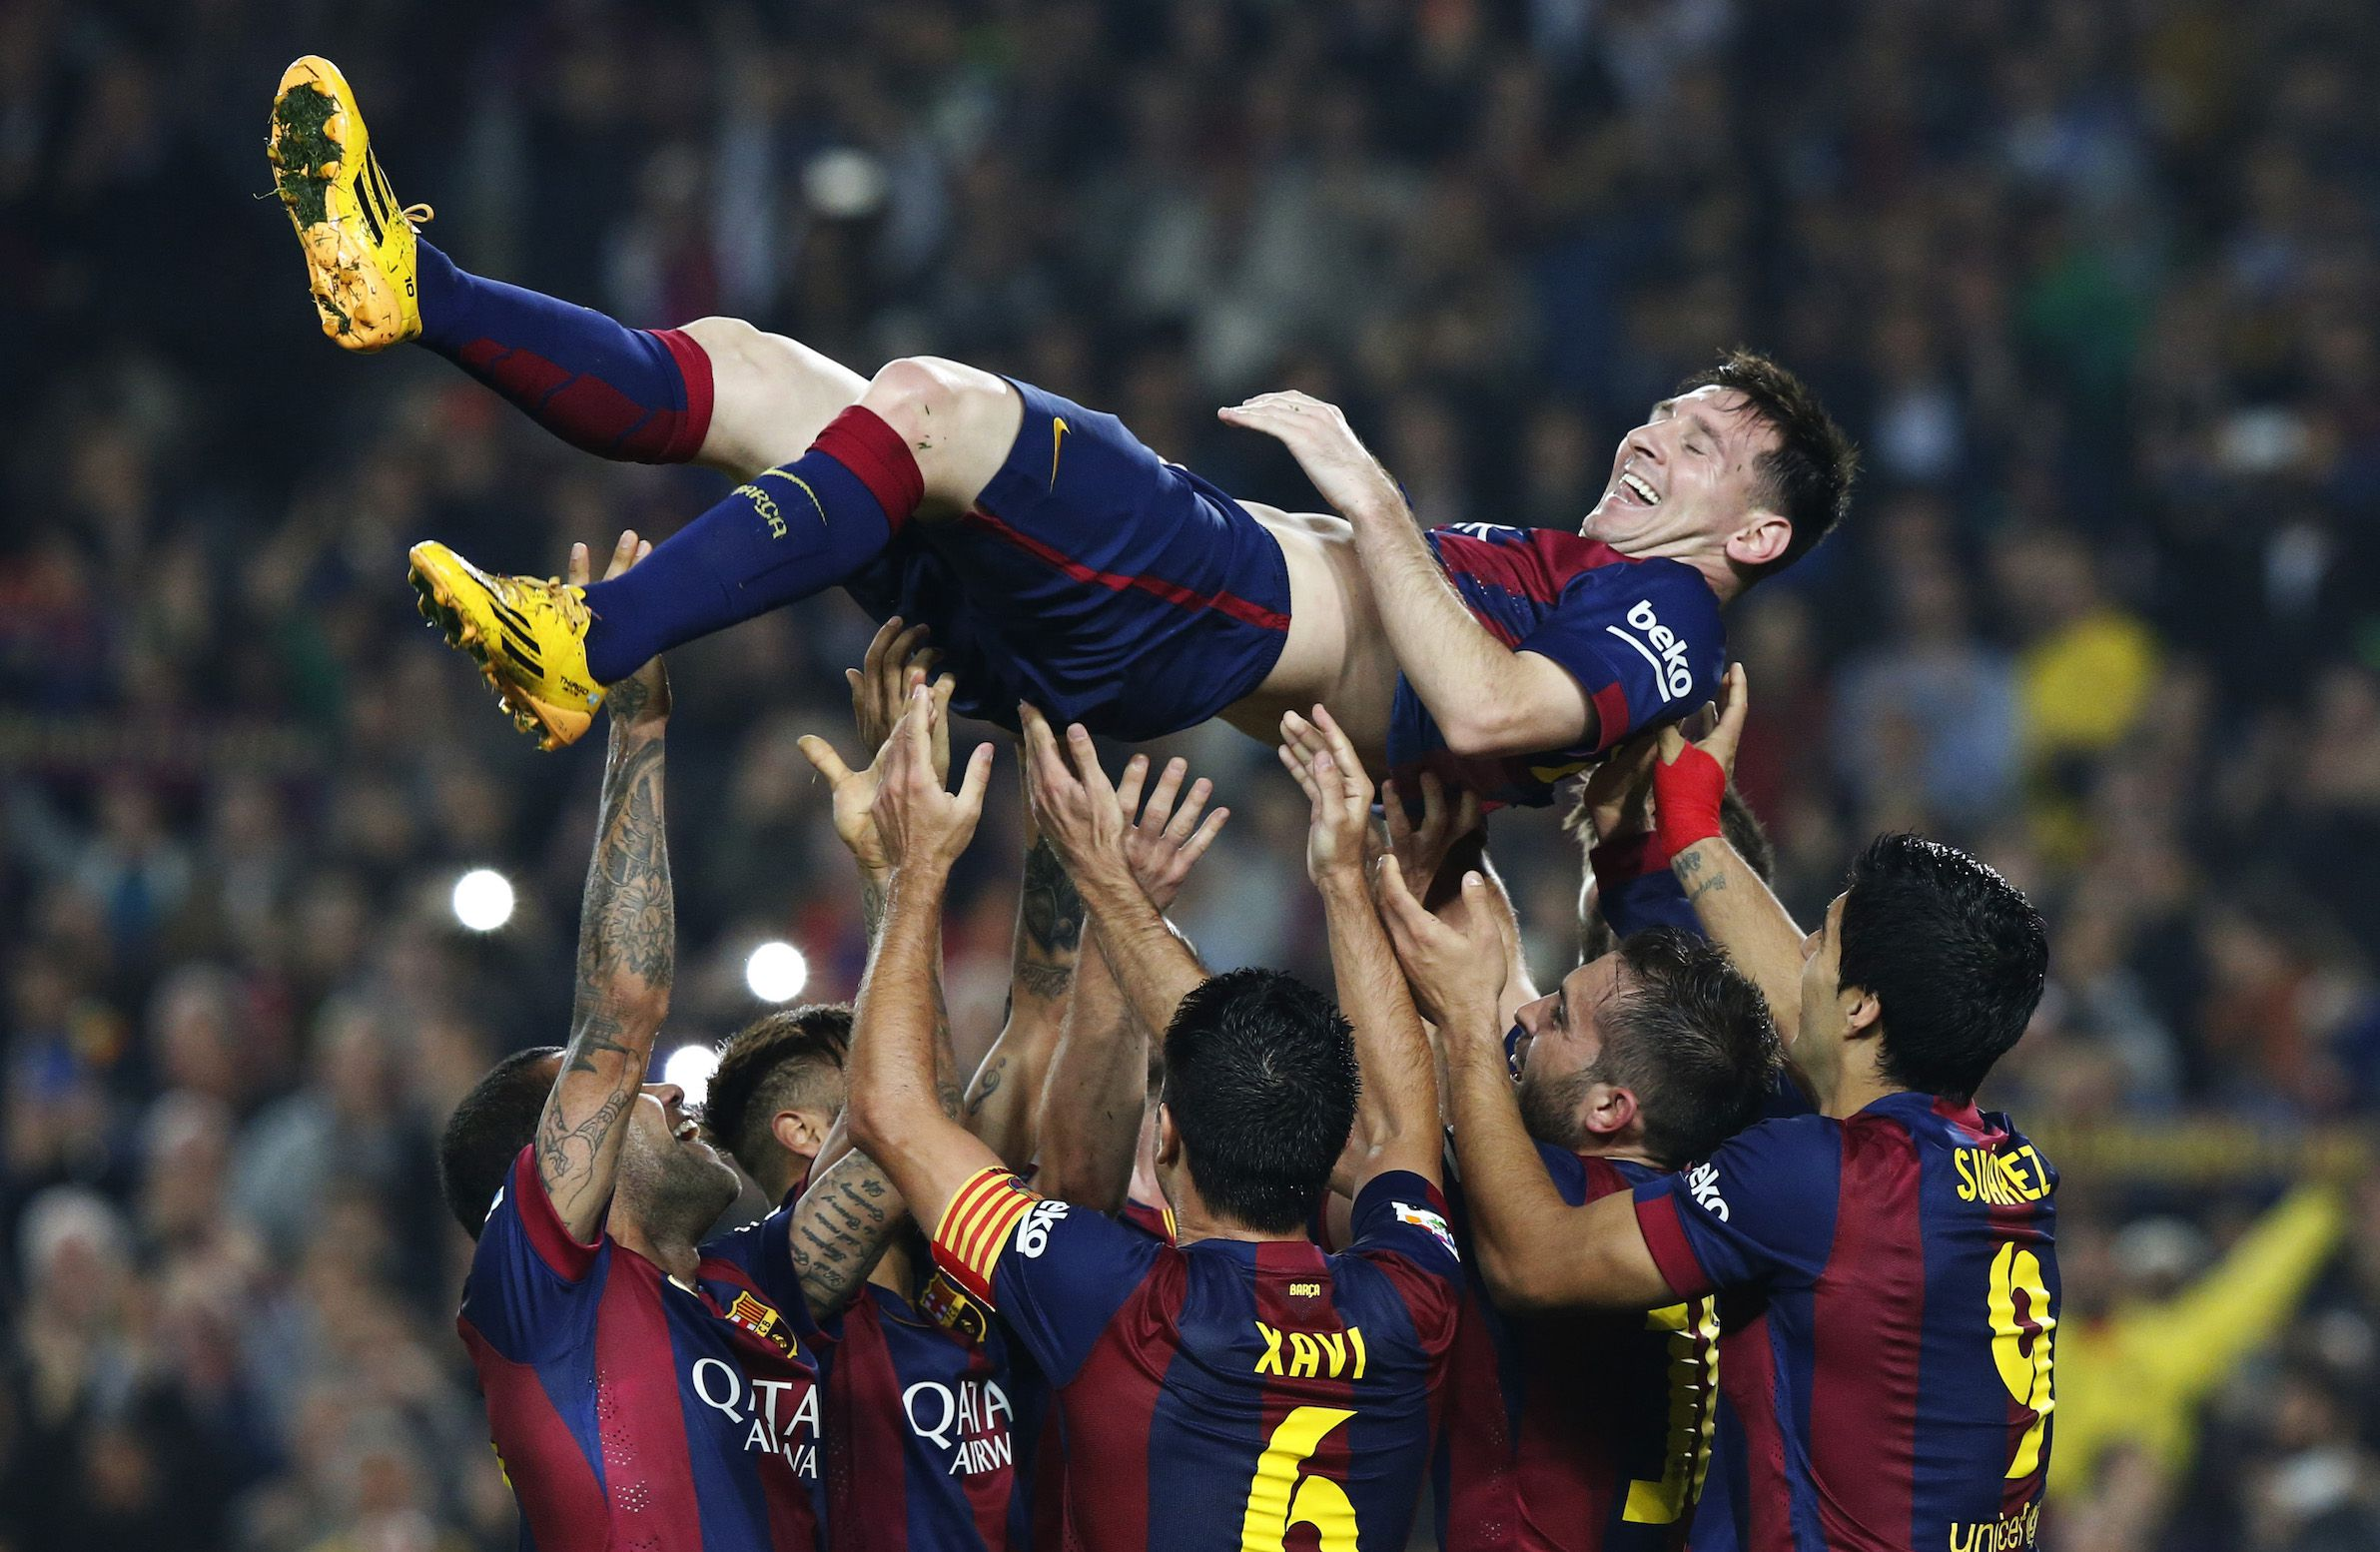 Barcelona's Lionel Messi celebrates his second goal with teammates during their Spanish first division soccer match against Sevilla at Nou Camp stadium in Barcelona November 22, 2014. Messi set a La Liga scoring record of 253 goals when he netted a hat-trick in Saturday's 5-1 win at home to Sevilla. REUTERS/Gustau Nacarino (SPAIN - Tags: SPORT SOCCER) - RTR4F6G3